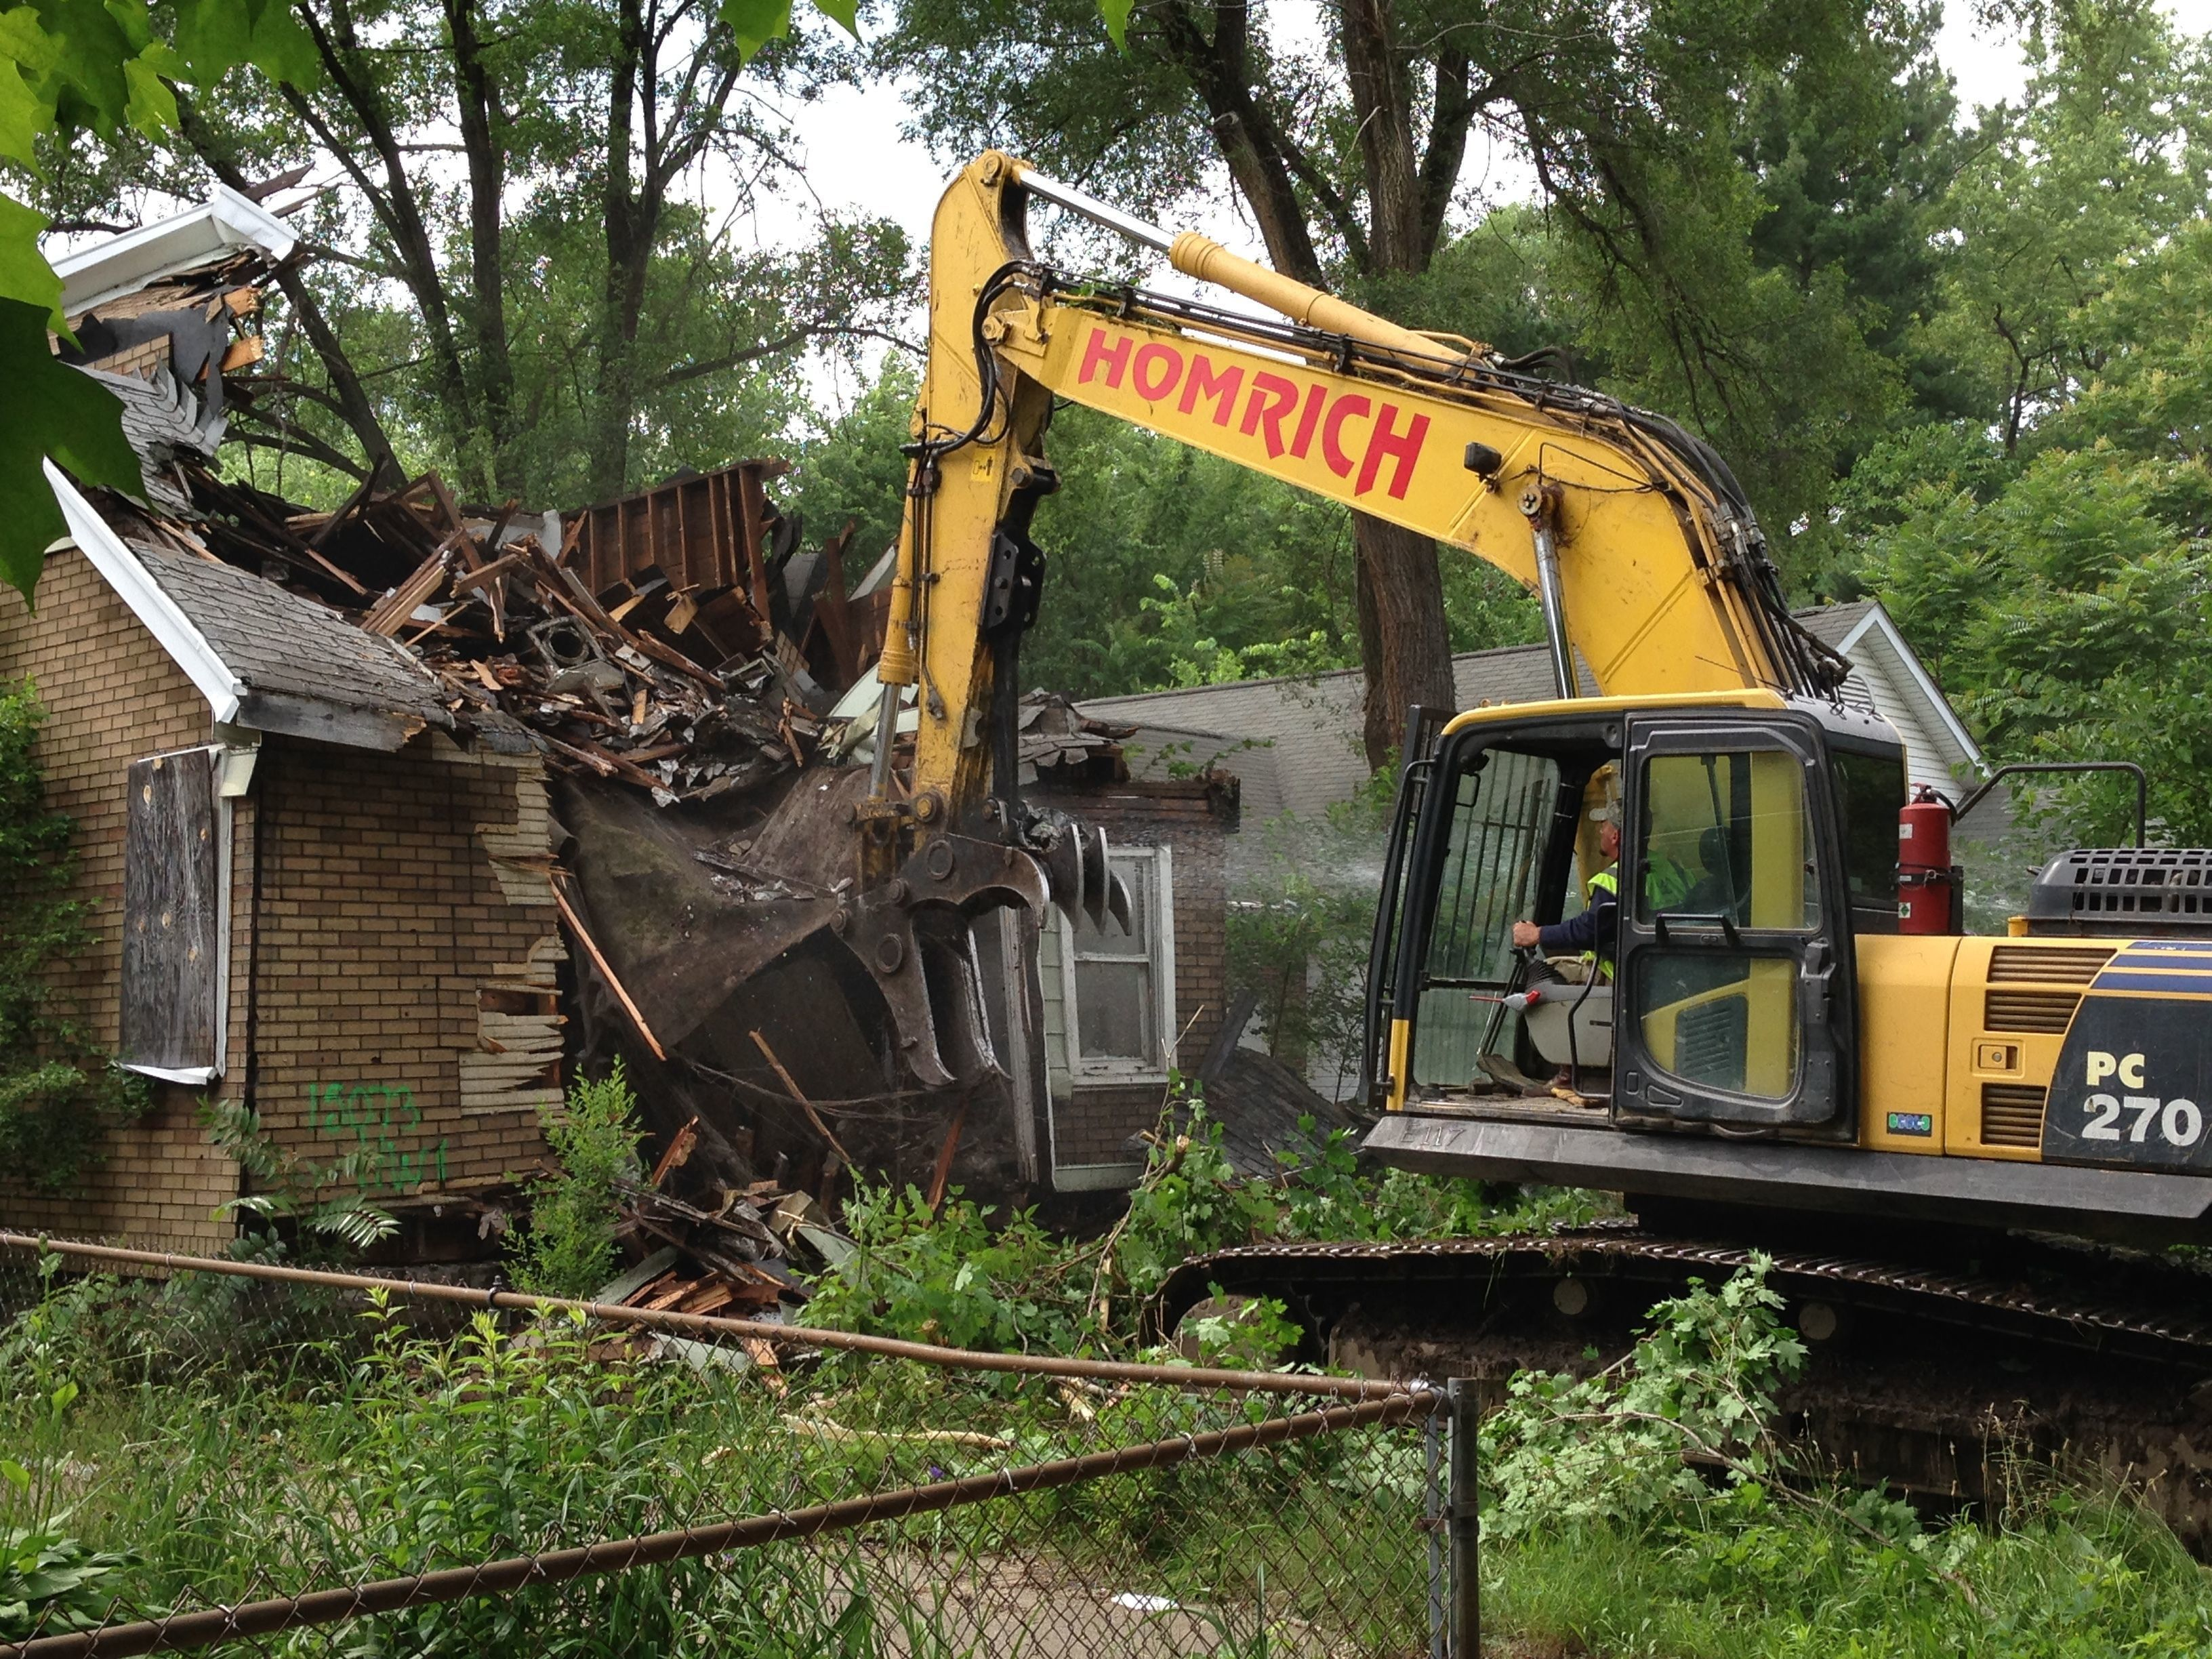 In this June 2015 photo, a contracted demolition crew from Detroit-based Homrich demolishes a house on Dolphin Street, as part of the city's blighted house demolition program.